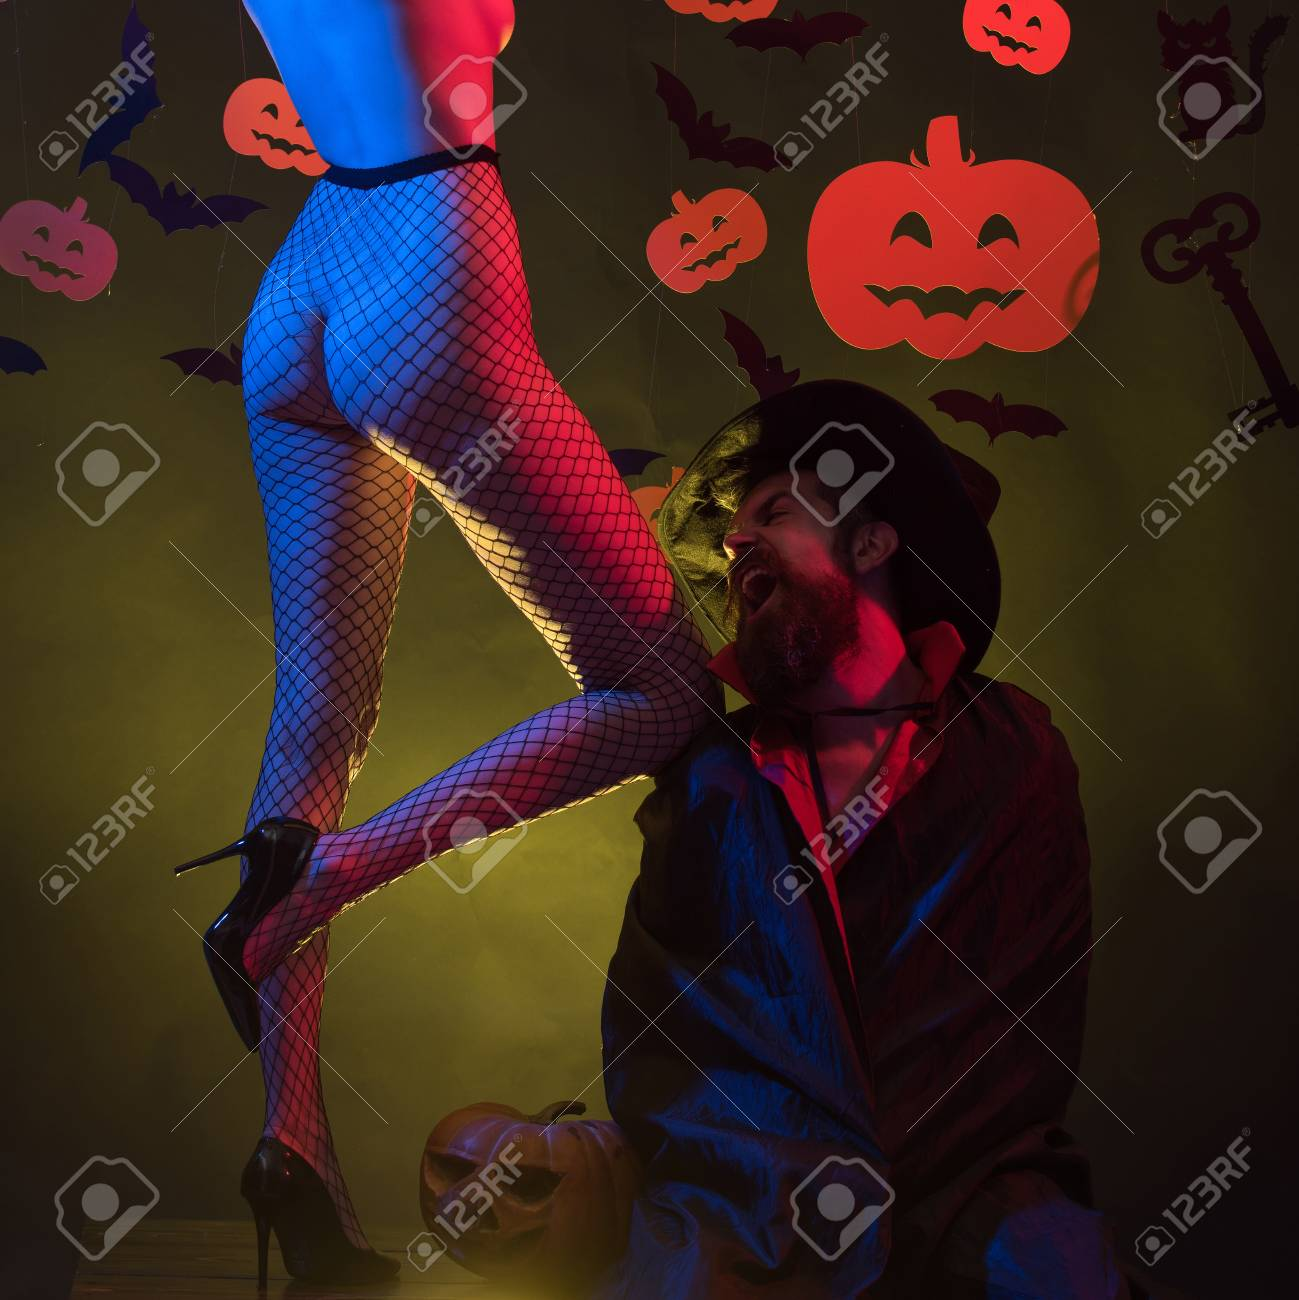 ... ass or butt. Night Party background. Sexy Horror background. Holiday  halloween with funny carnival costumes on a halloween background. Romantic  couple.